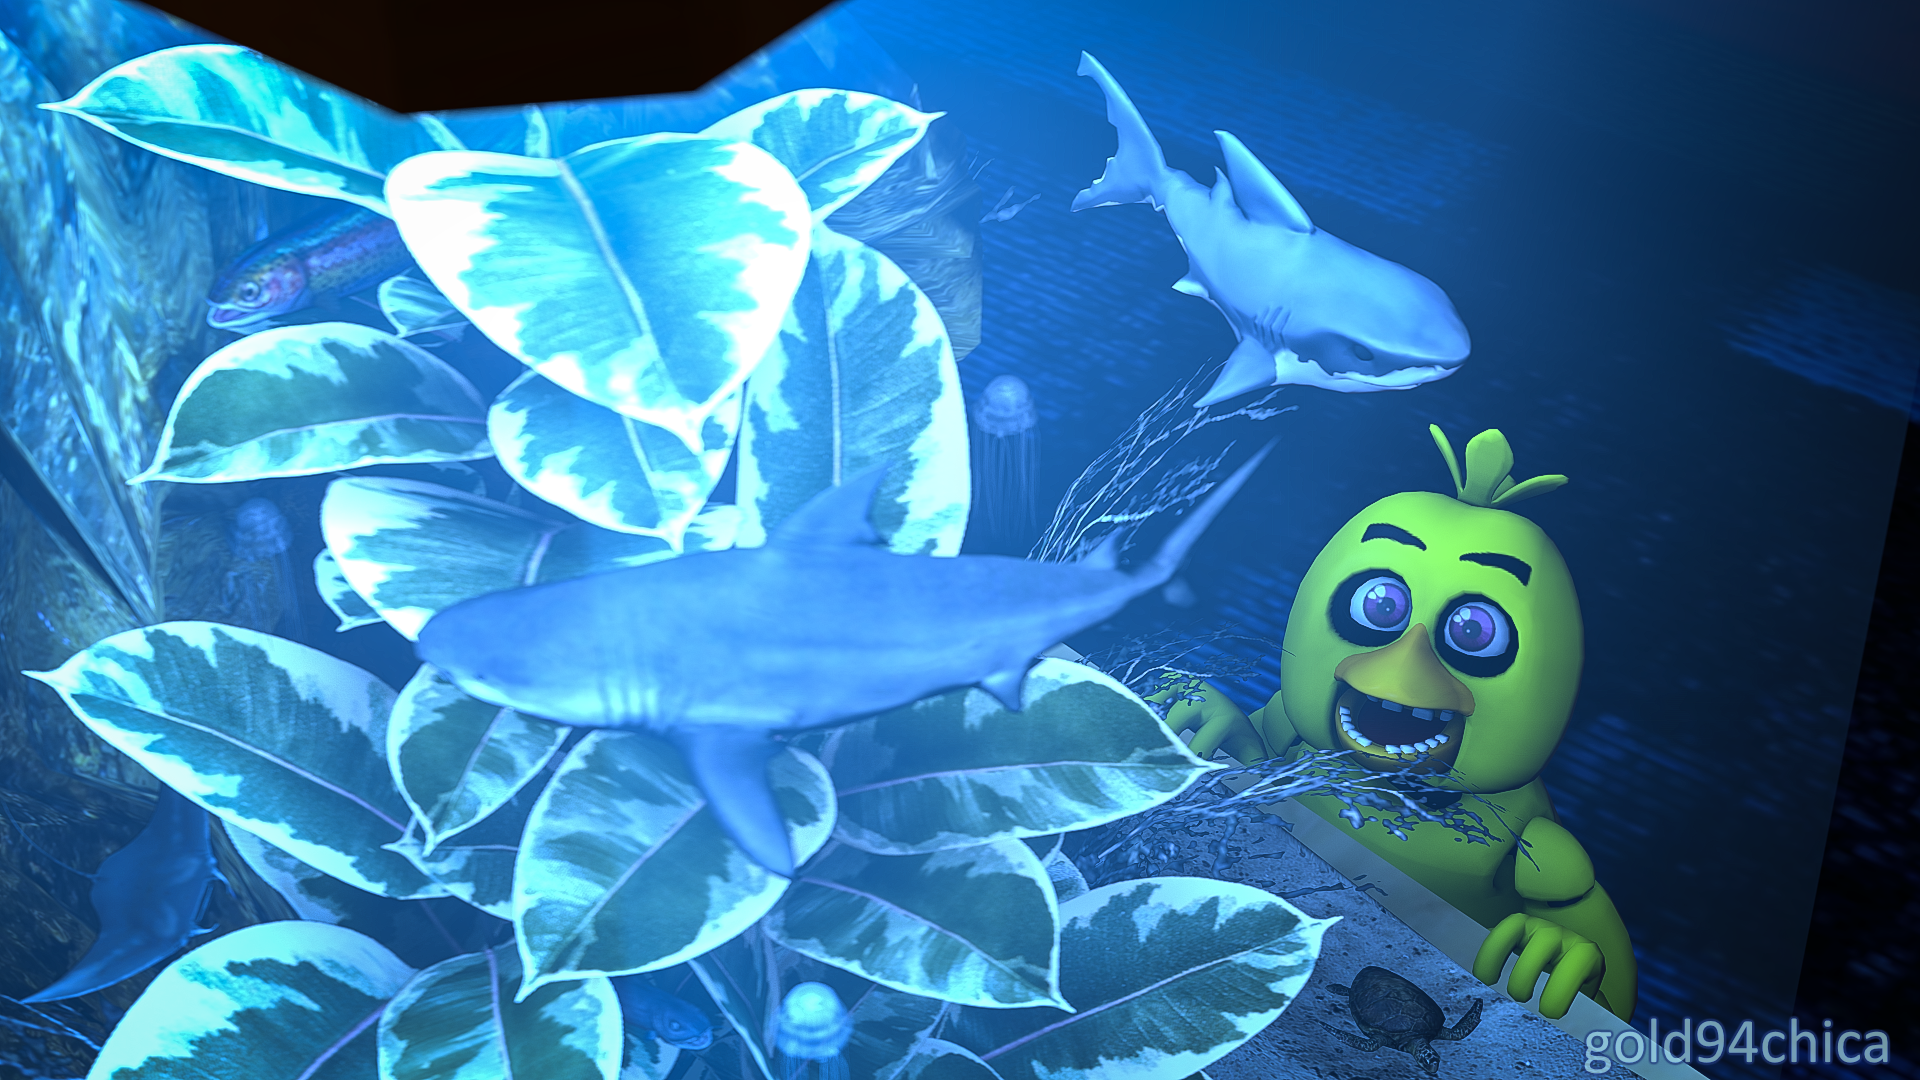 Fish tank sharks -  New Additions To My Fish Tank For Shark Week By Gold94chica